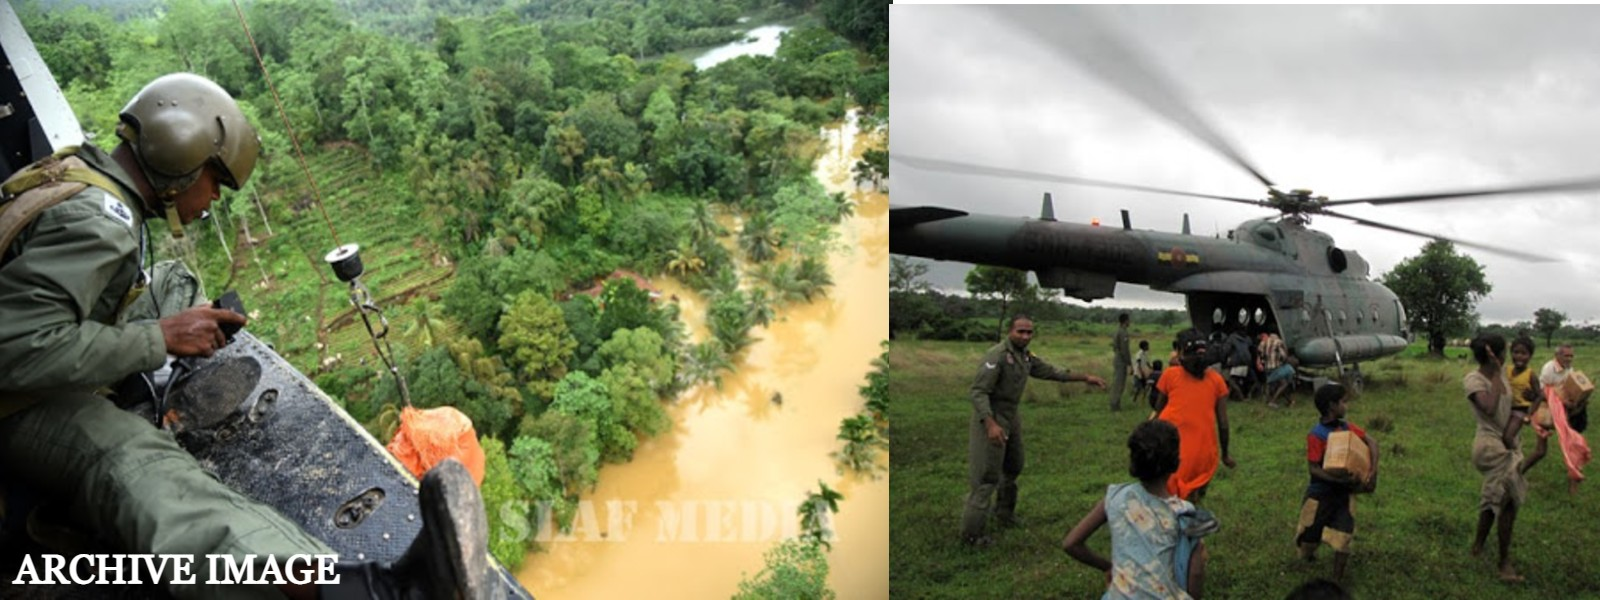 Air Force puts helicopters and troops on stand-by for Search and Rescue Operations